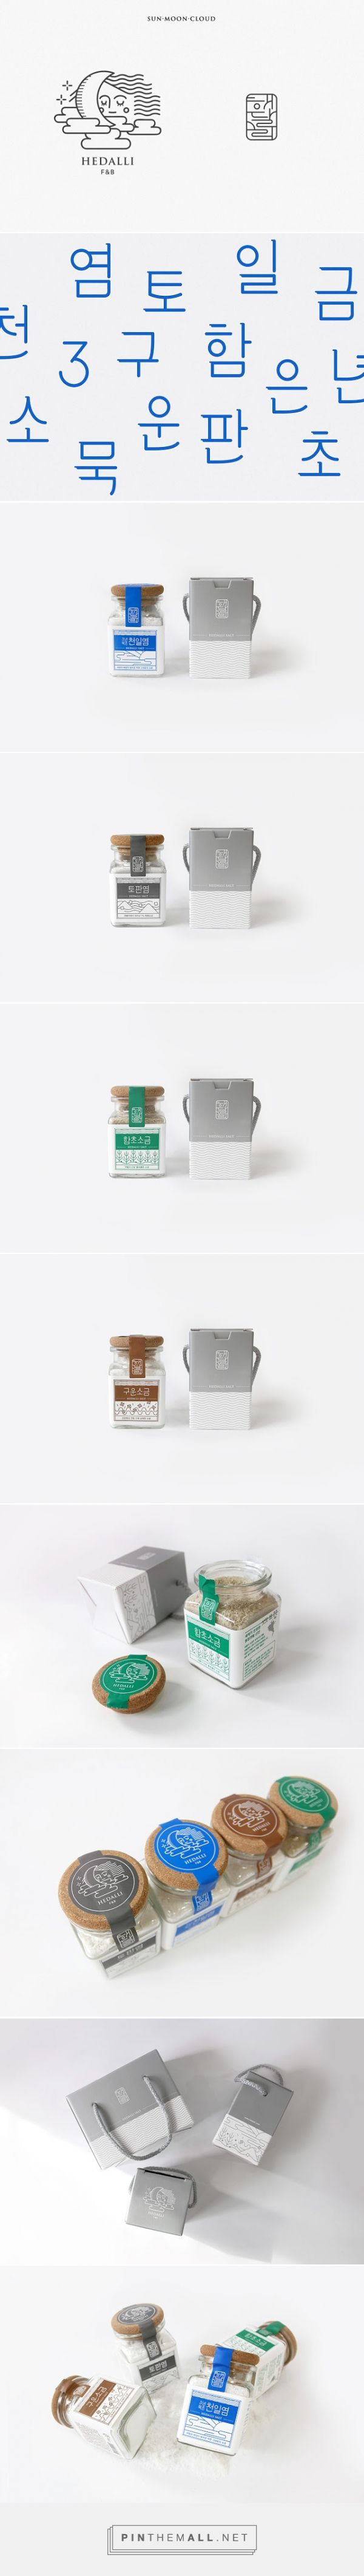 #Korean Hedali #Salt #packaging designed by Triangle Studio - http://www.packagingoftheworld.com/2015/10/hedali-salt.html